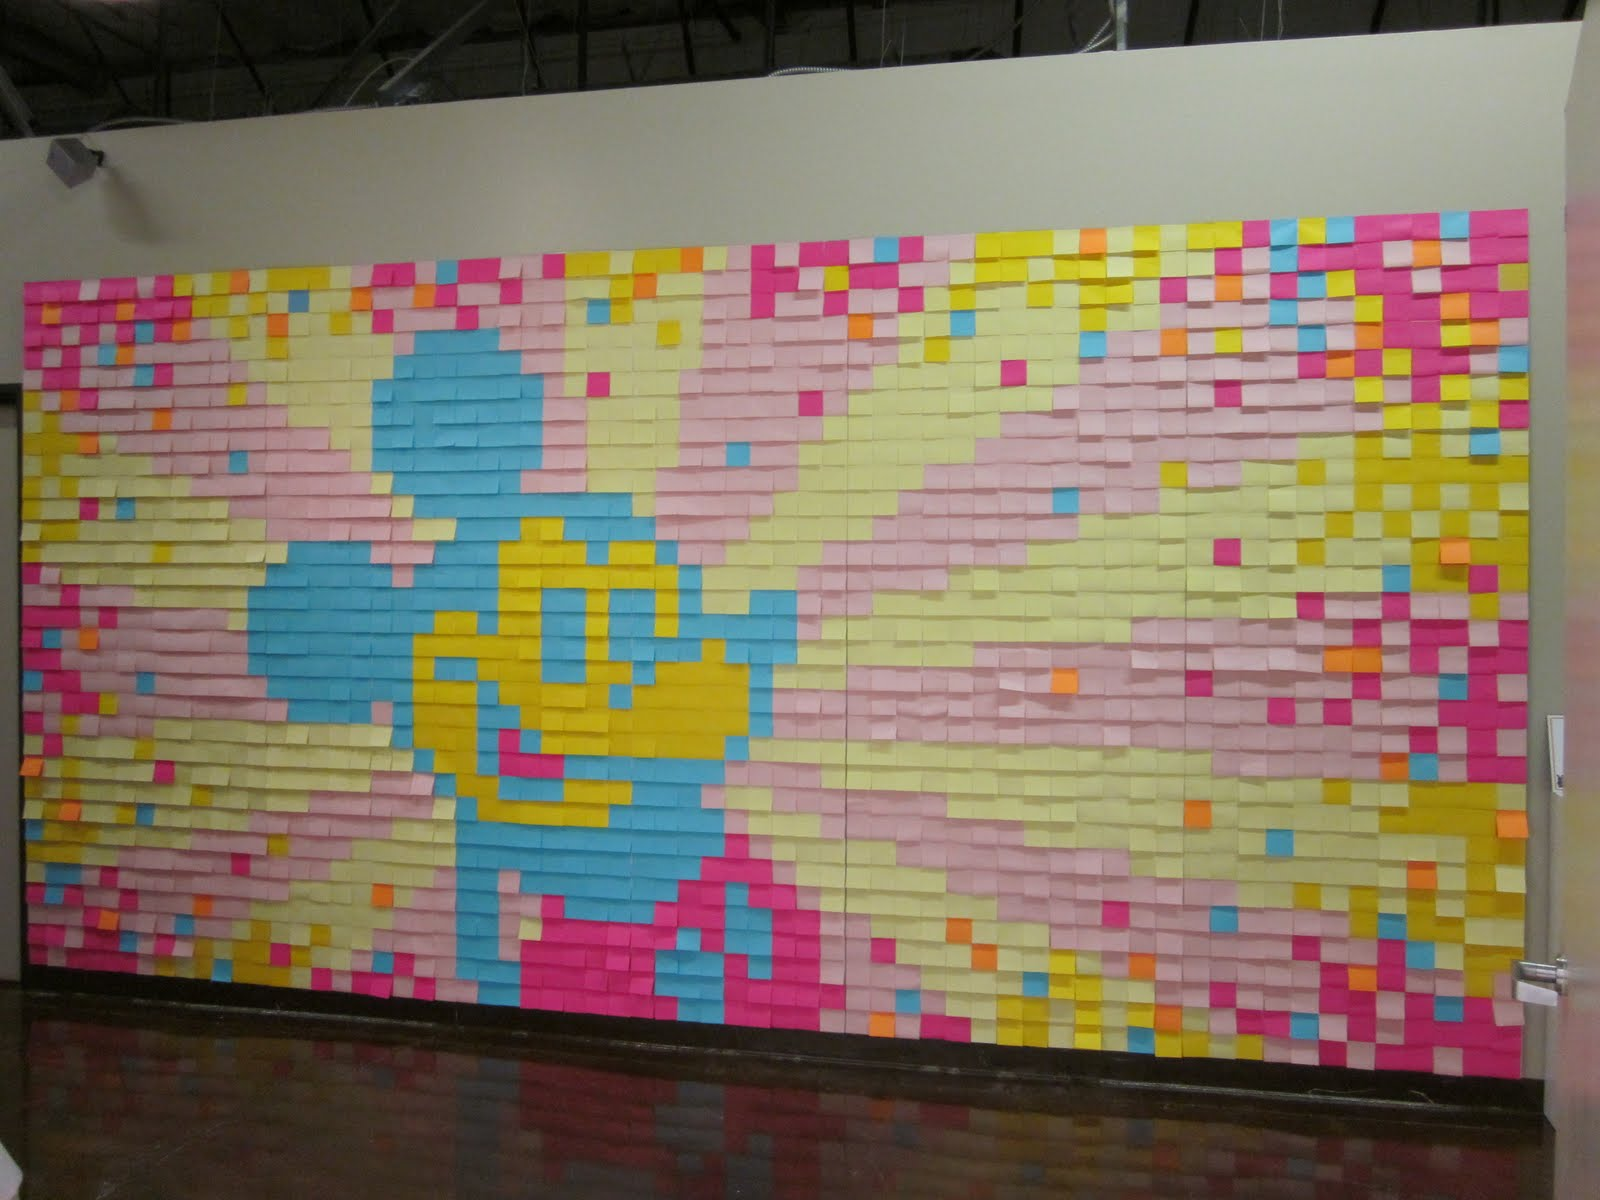 mickey mouse post it wall art over 2000 post it notes make up this mickey mouse wall mural